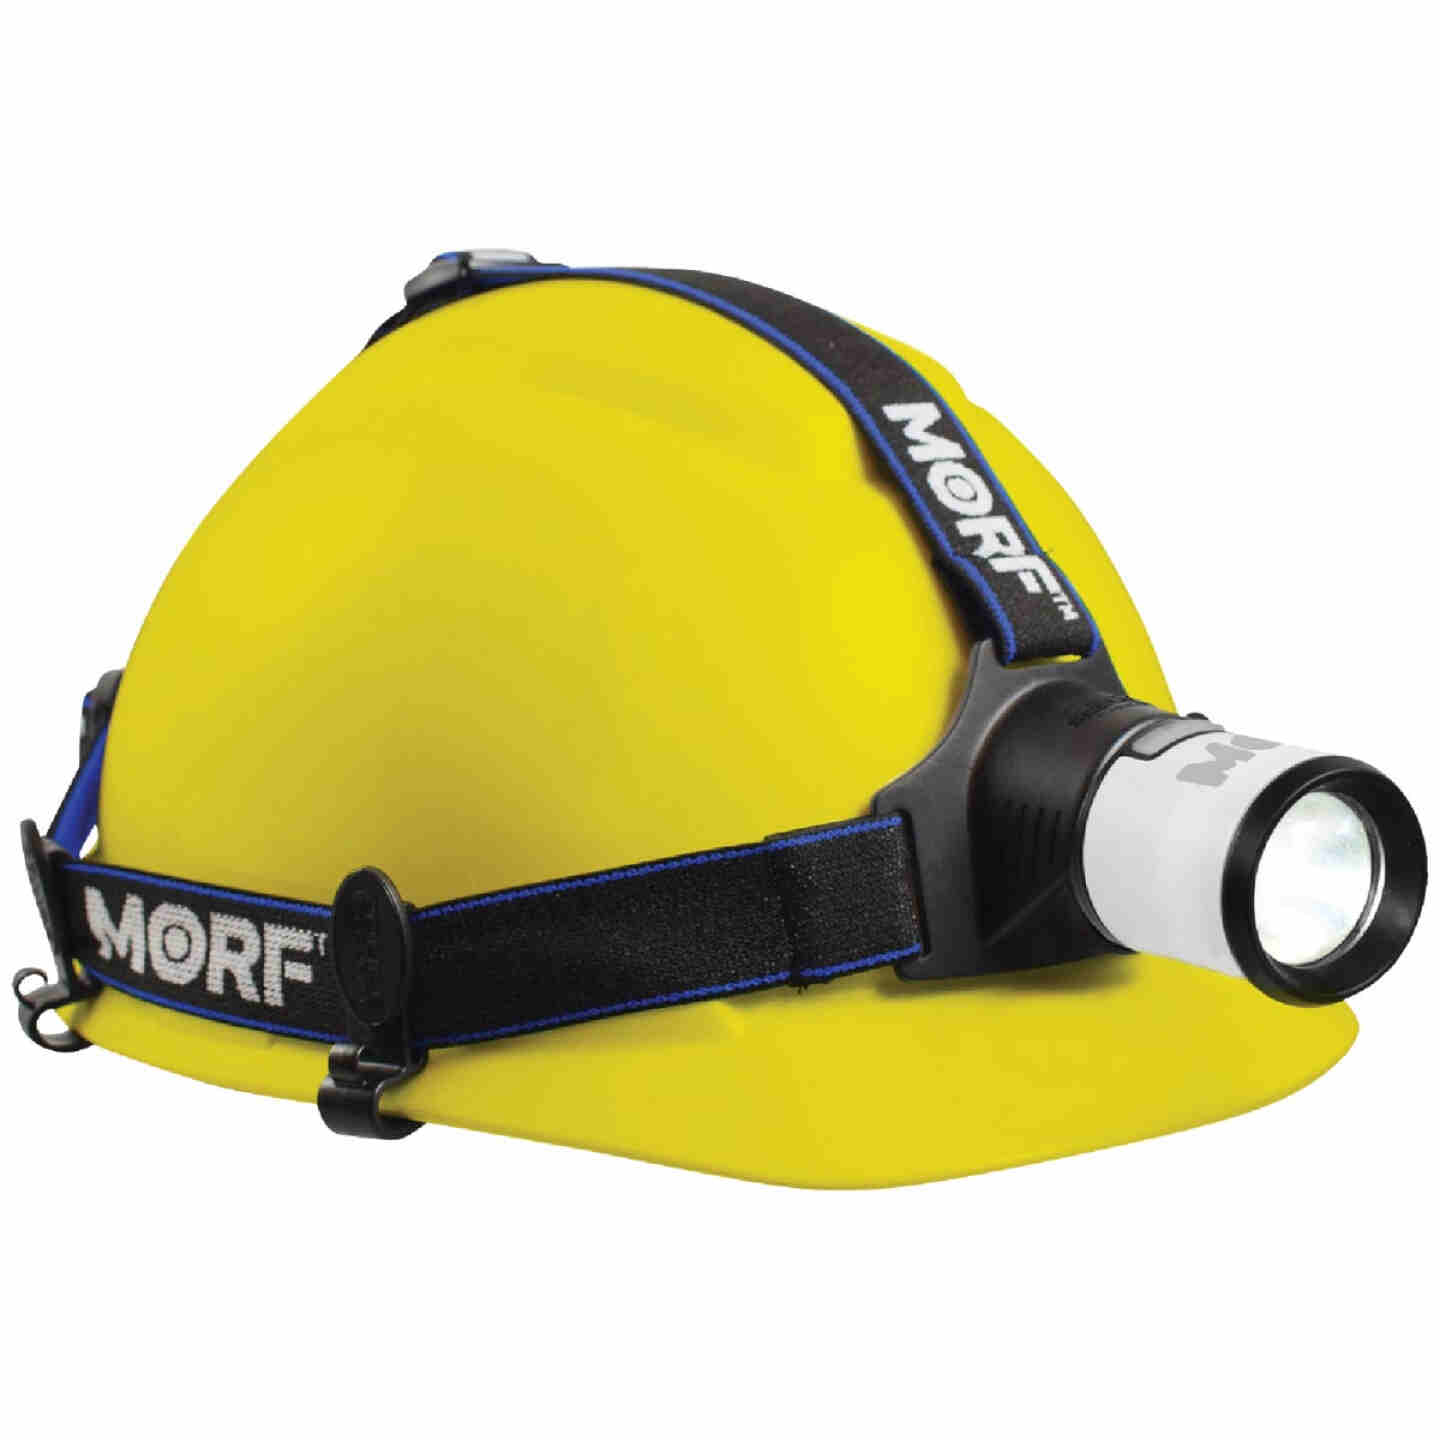 Police Security MORF 300 Lm. LED 4AA 3-In-1 Removable Lantern Headlamp Image 9